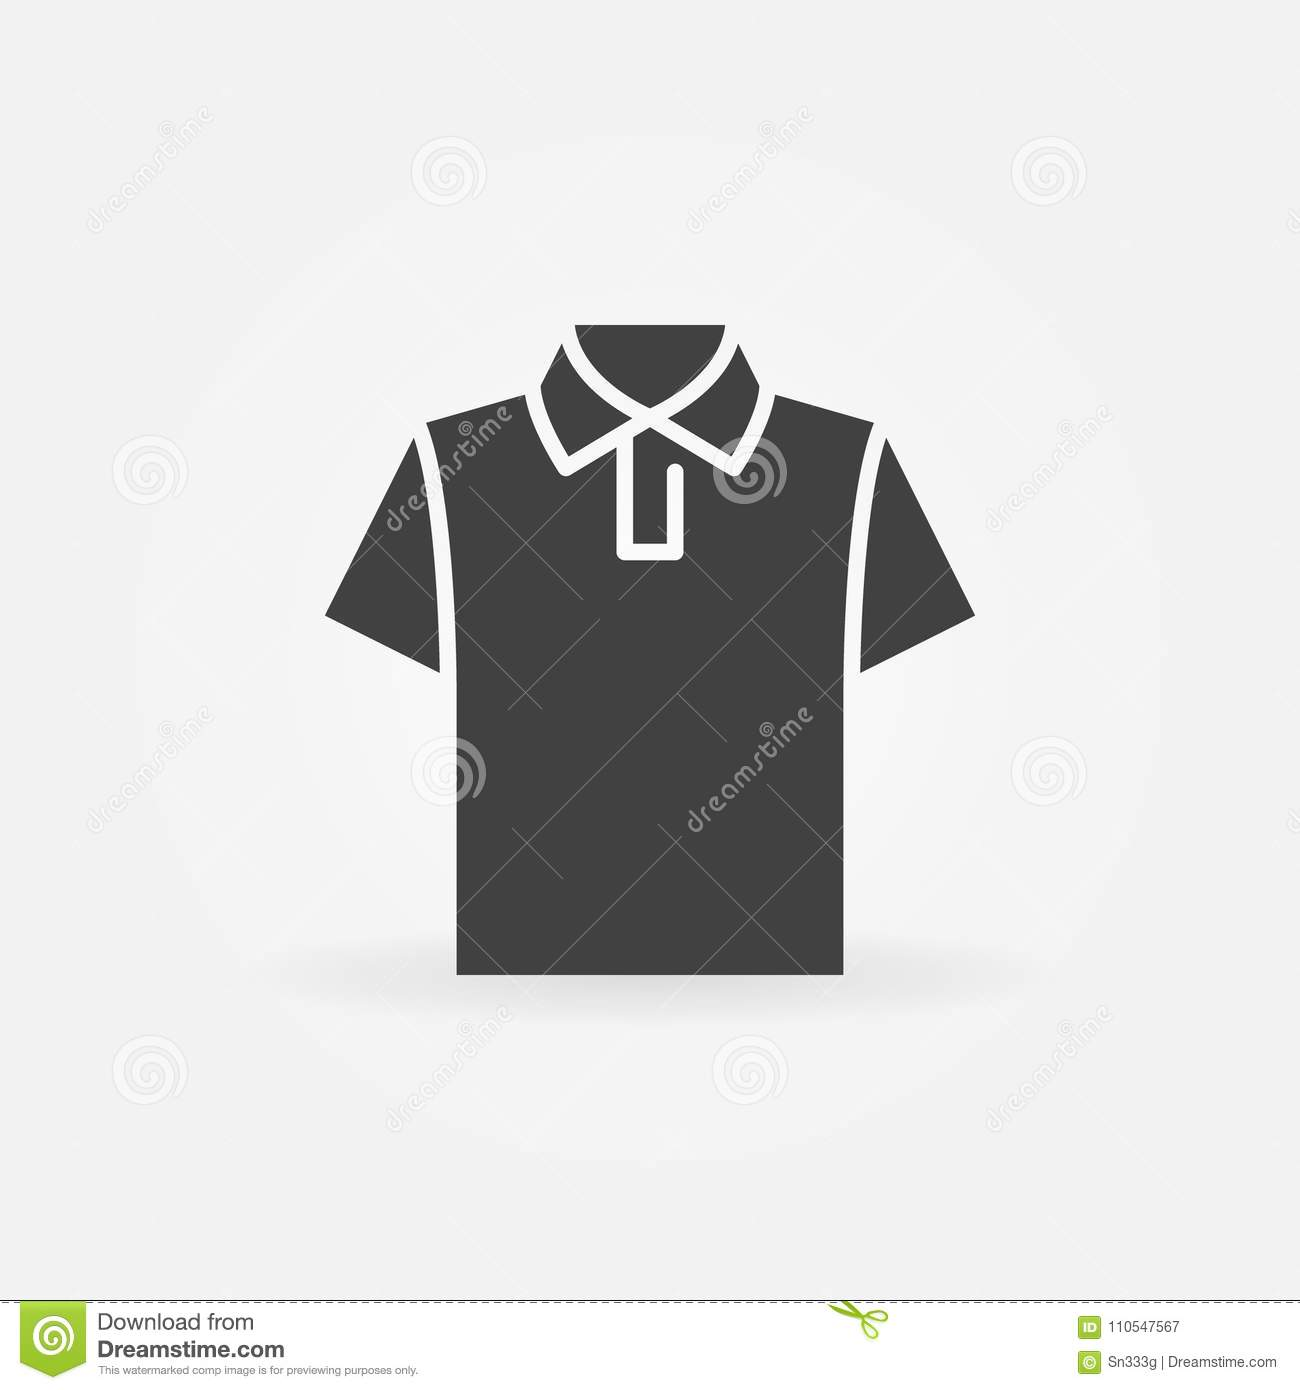 icon shirt stock illustrations 144 571 icon shirt stock illustrations vectors clipart dreamstime https www dreamstime com t shirt icon tshirt vector concept symbol design element t shirt icon tshirt vector symbol image110547567